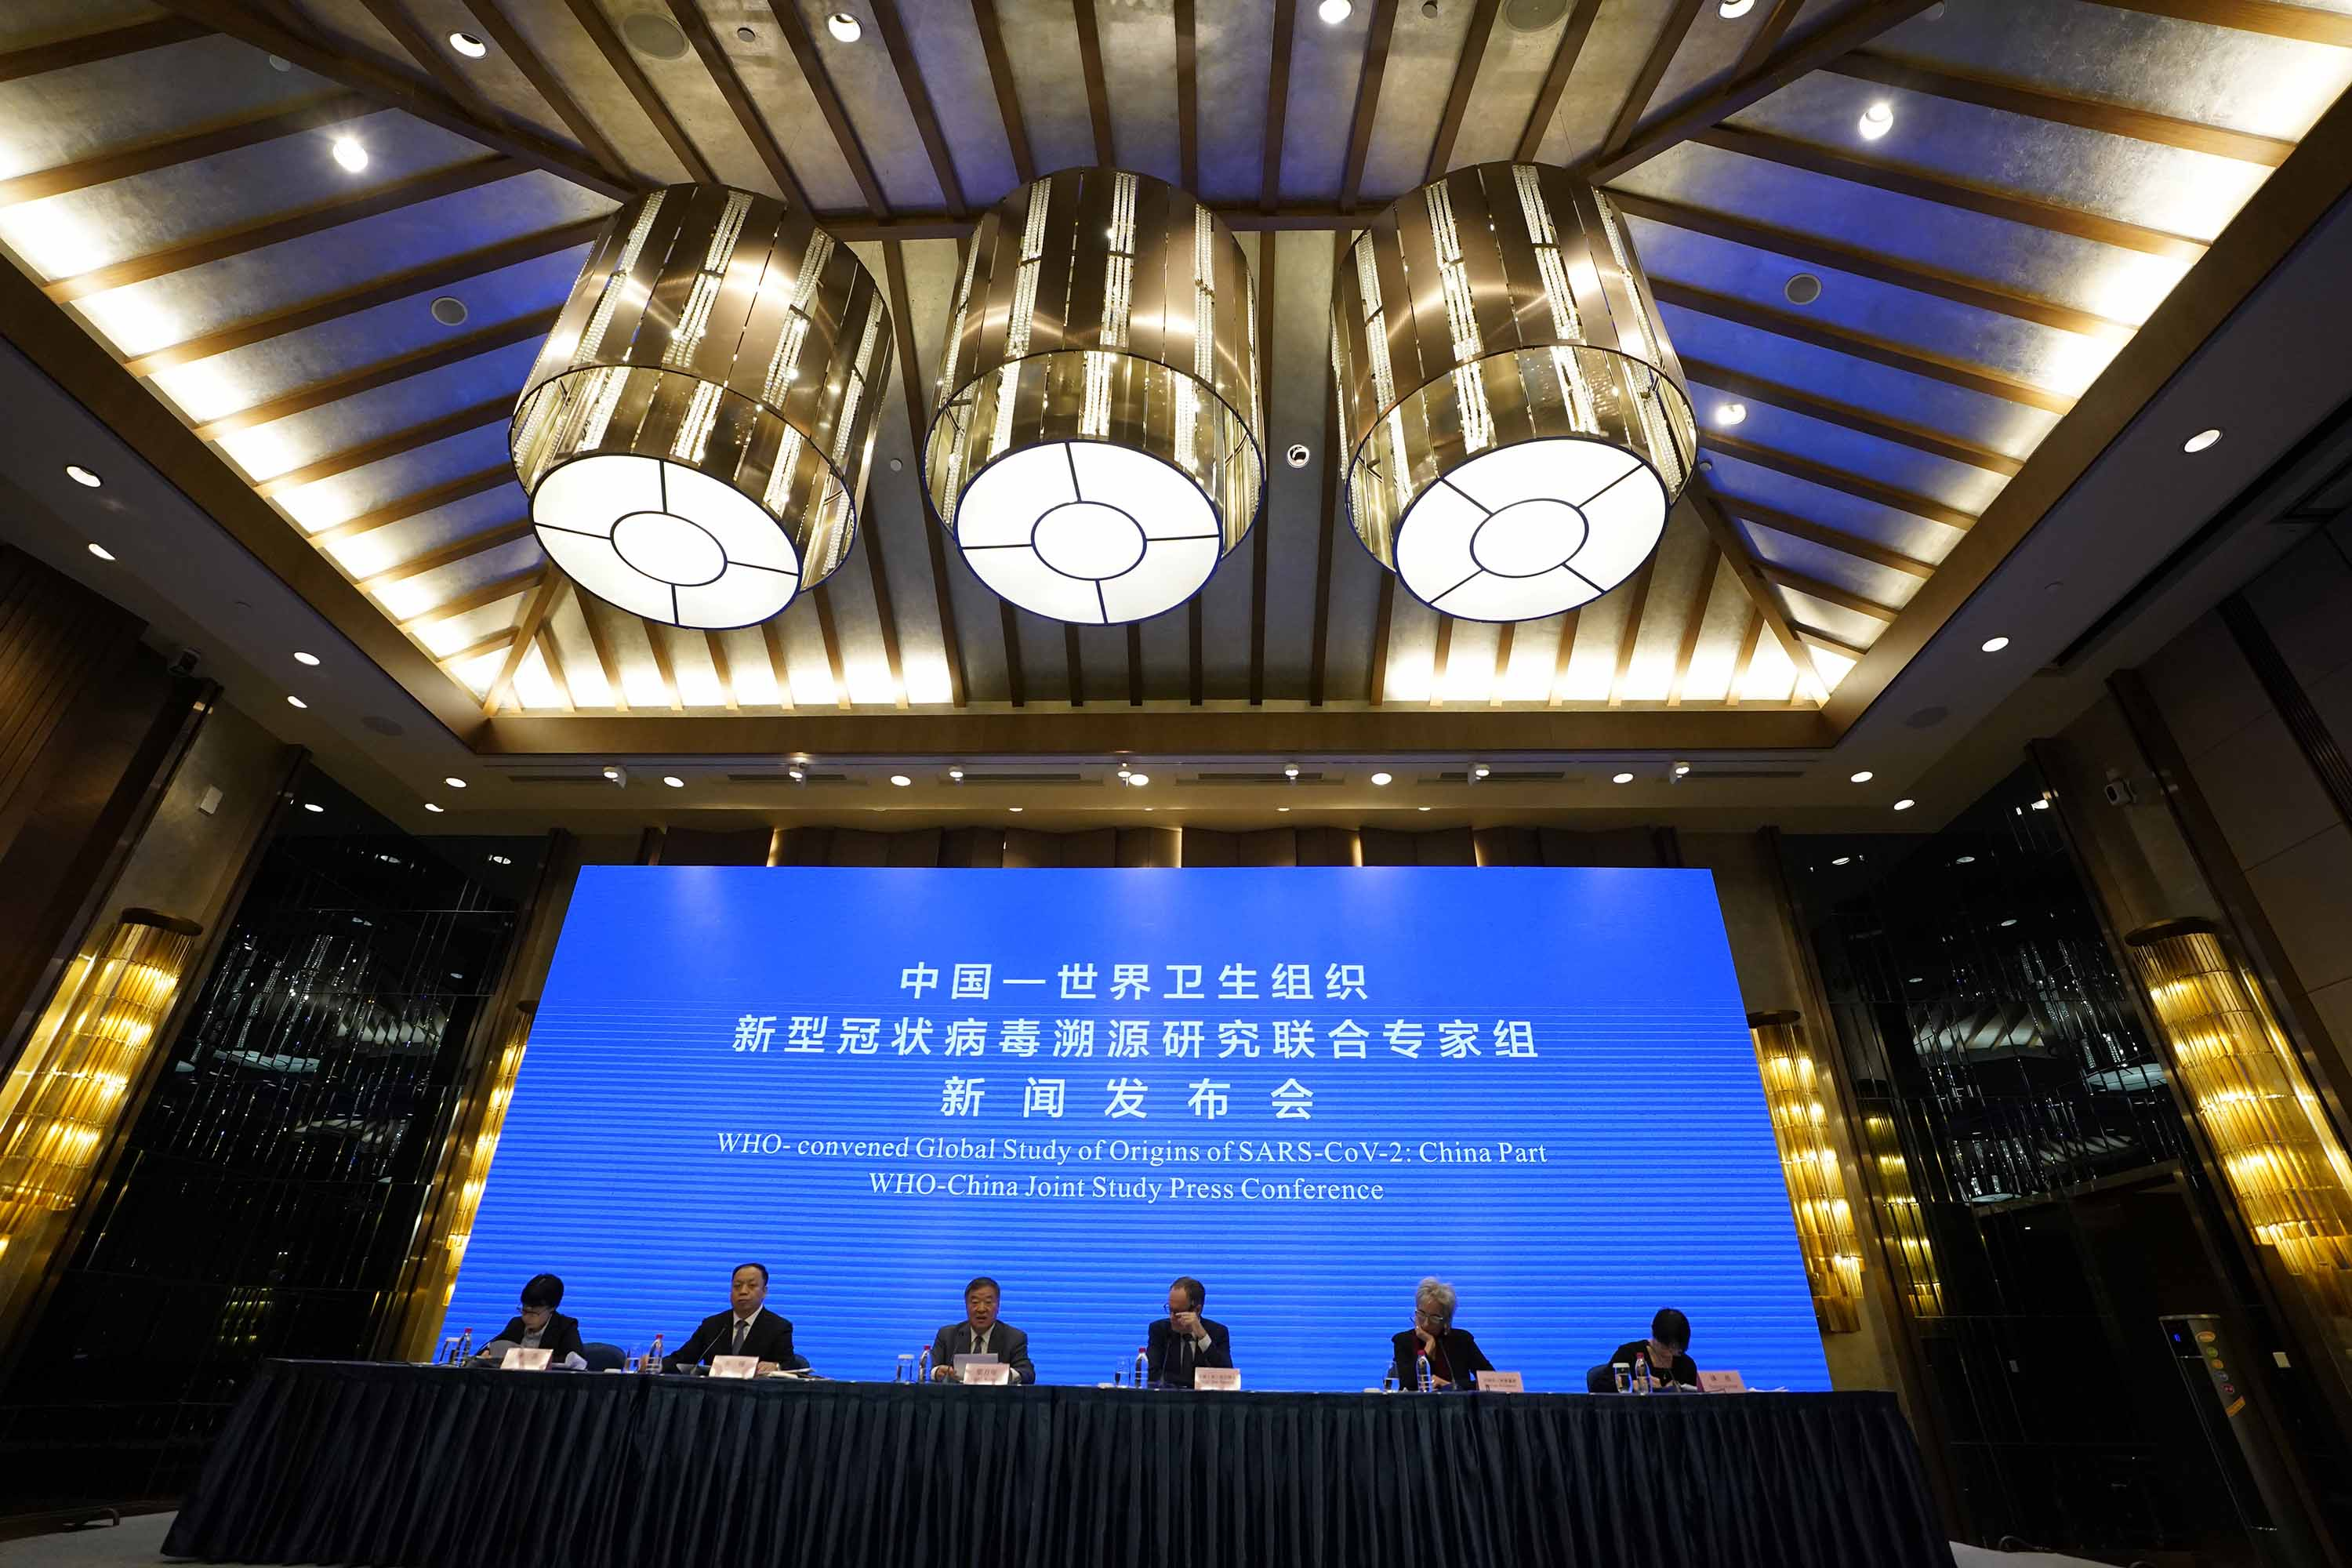 A WHO-China Joint Study Press Conference is held at the end of a WHO mission to investigate the origins of the coronavirus pandemic in Wuhan, China, on Tuesday, February 9.